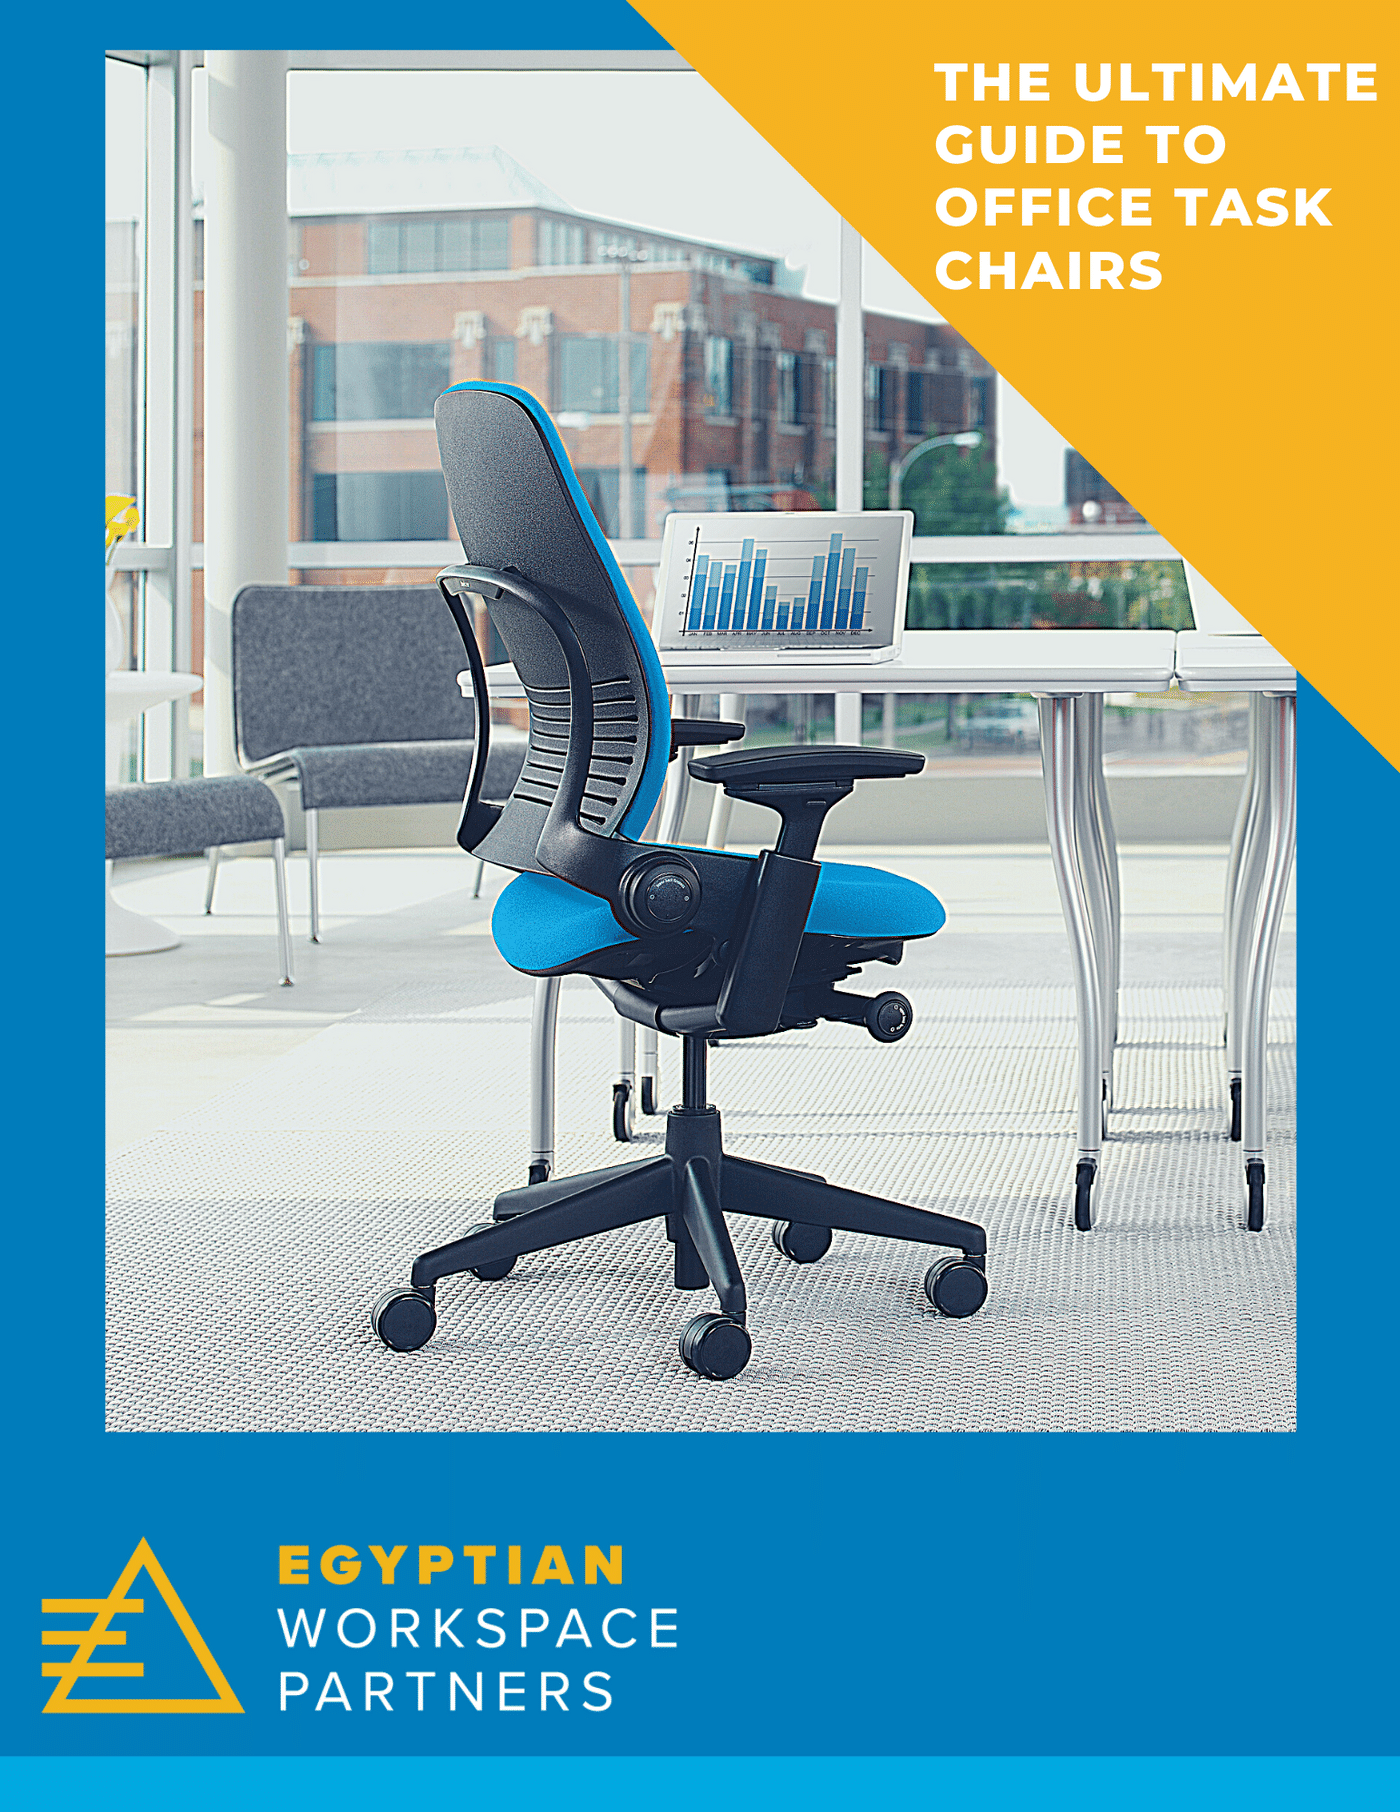 The Best Office Task Chairs of 2021